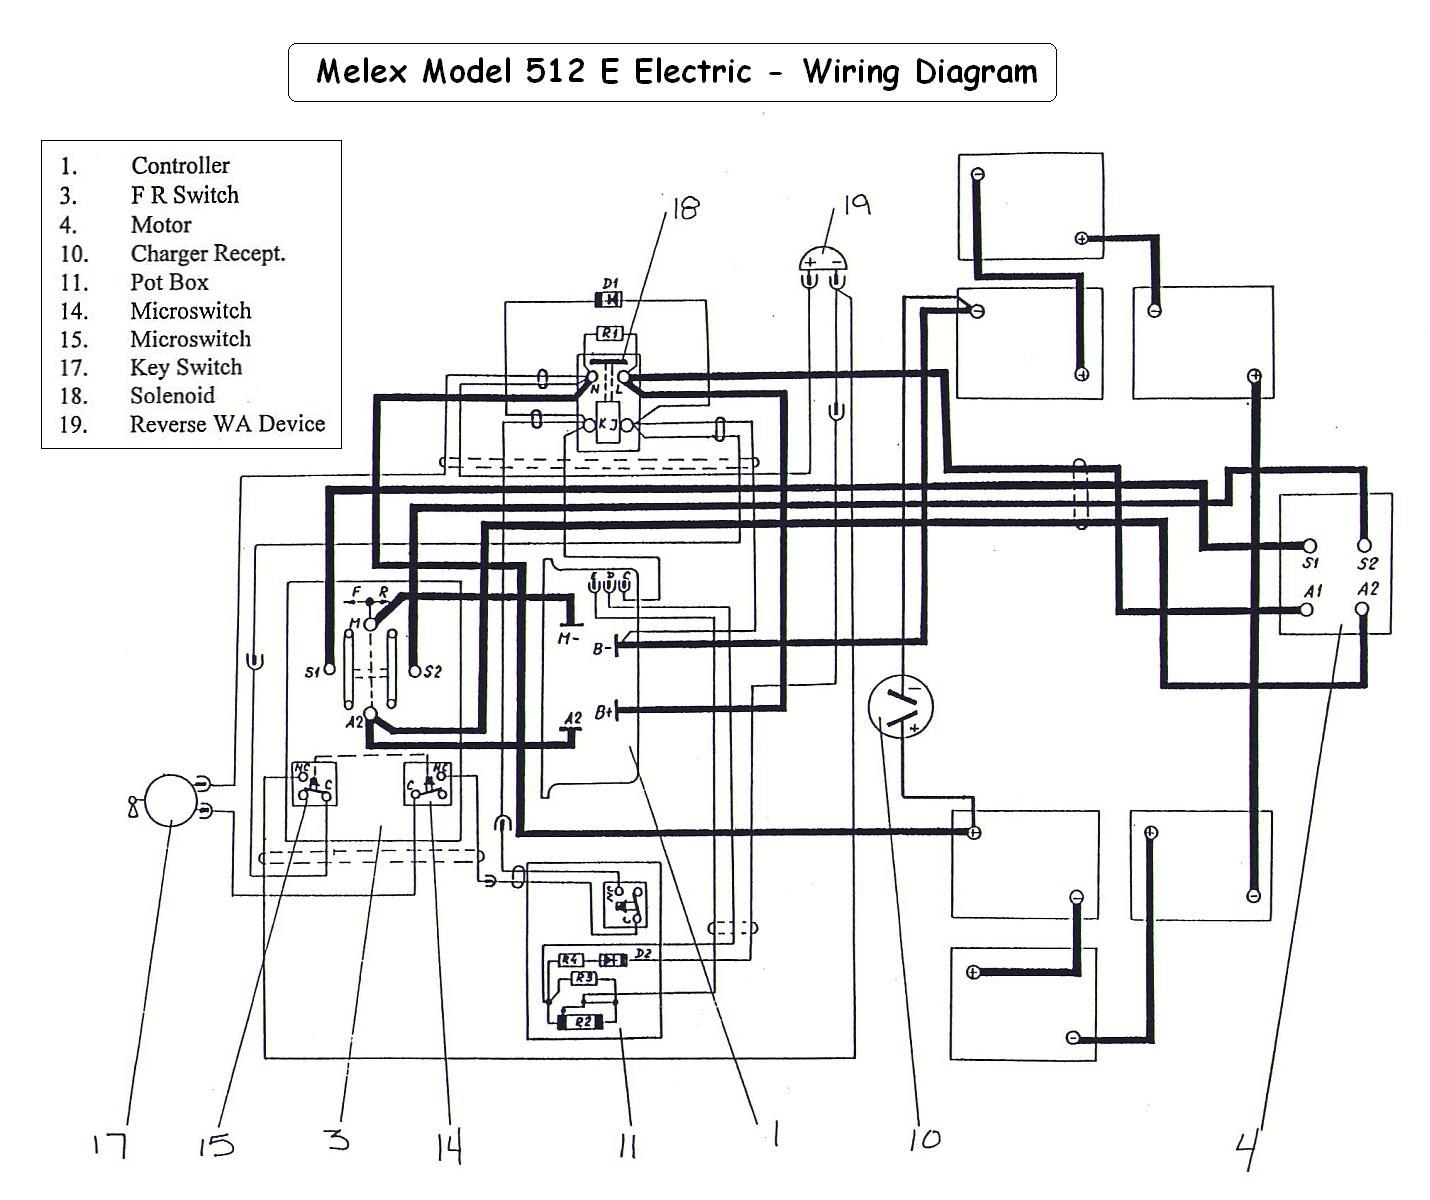 2000 ezgo txt wiring diagram trusted wiring diagram 2004 harley-davidson wiring diagram 2006 ezgo electric wiring diagrams house wiring diagram symbols \\u2022 ezgo txt parts diagram 2000 ezgo txt wiring diagram